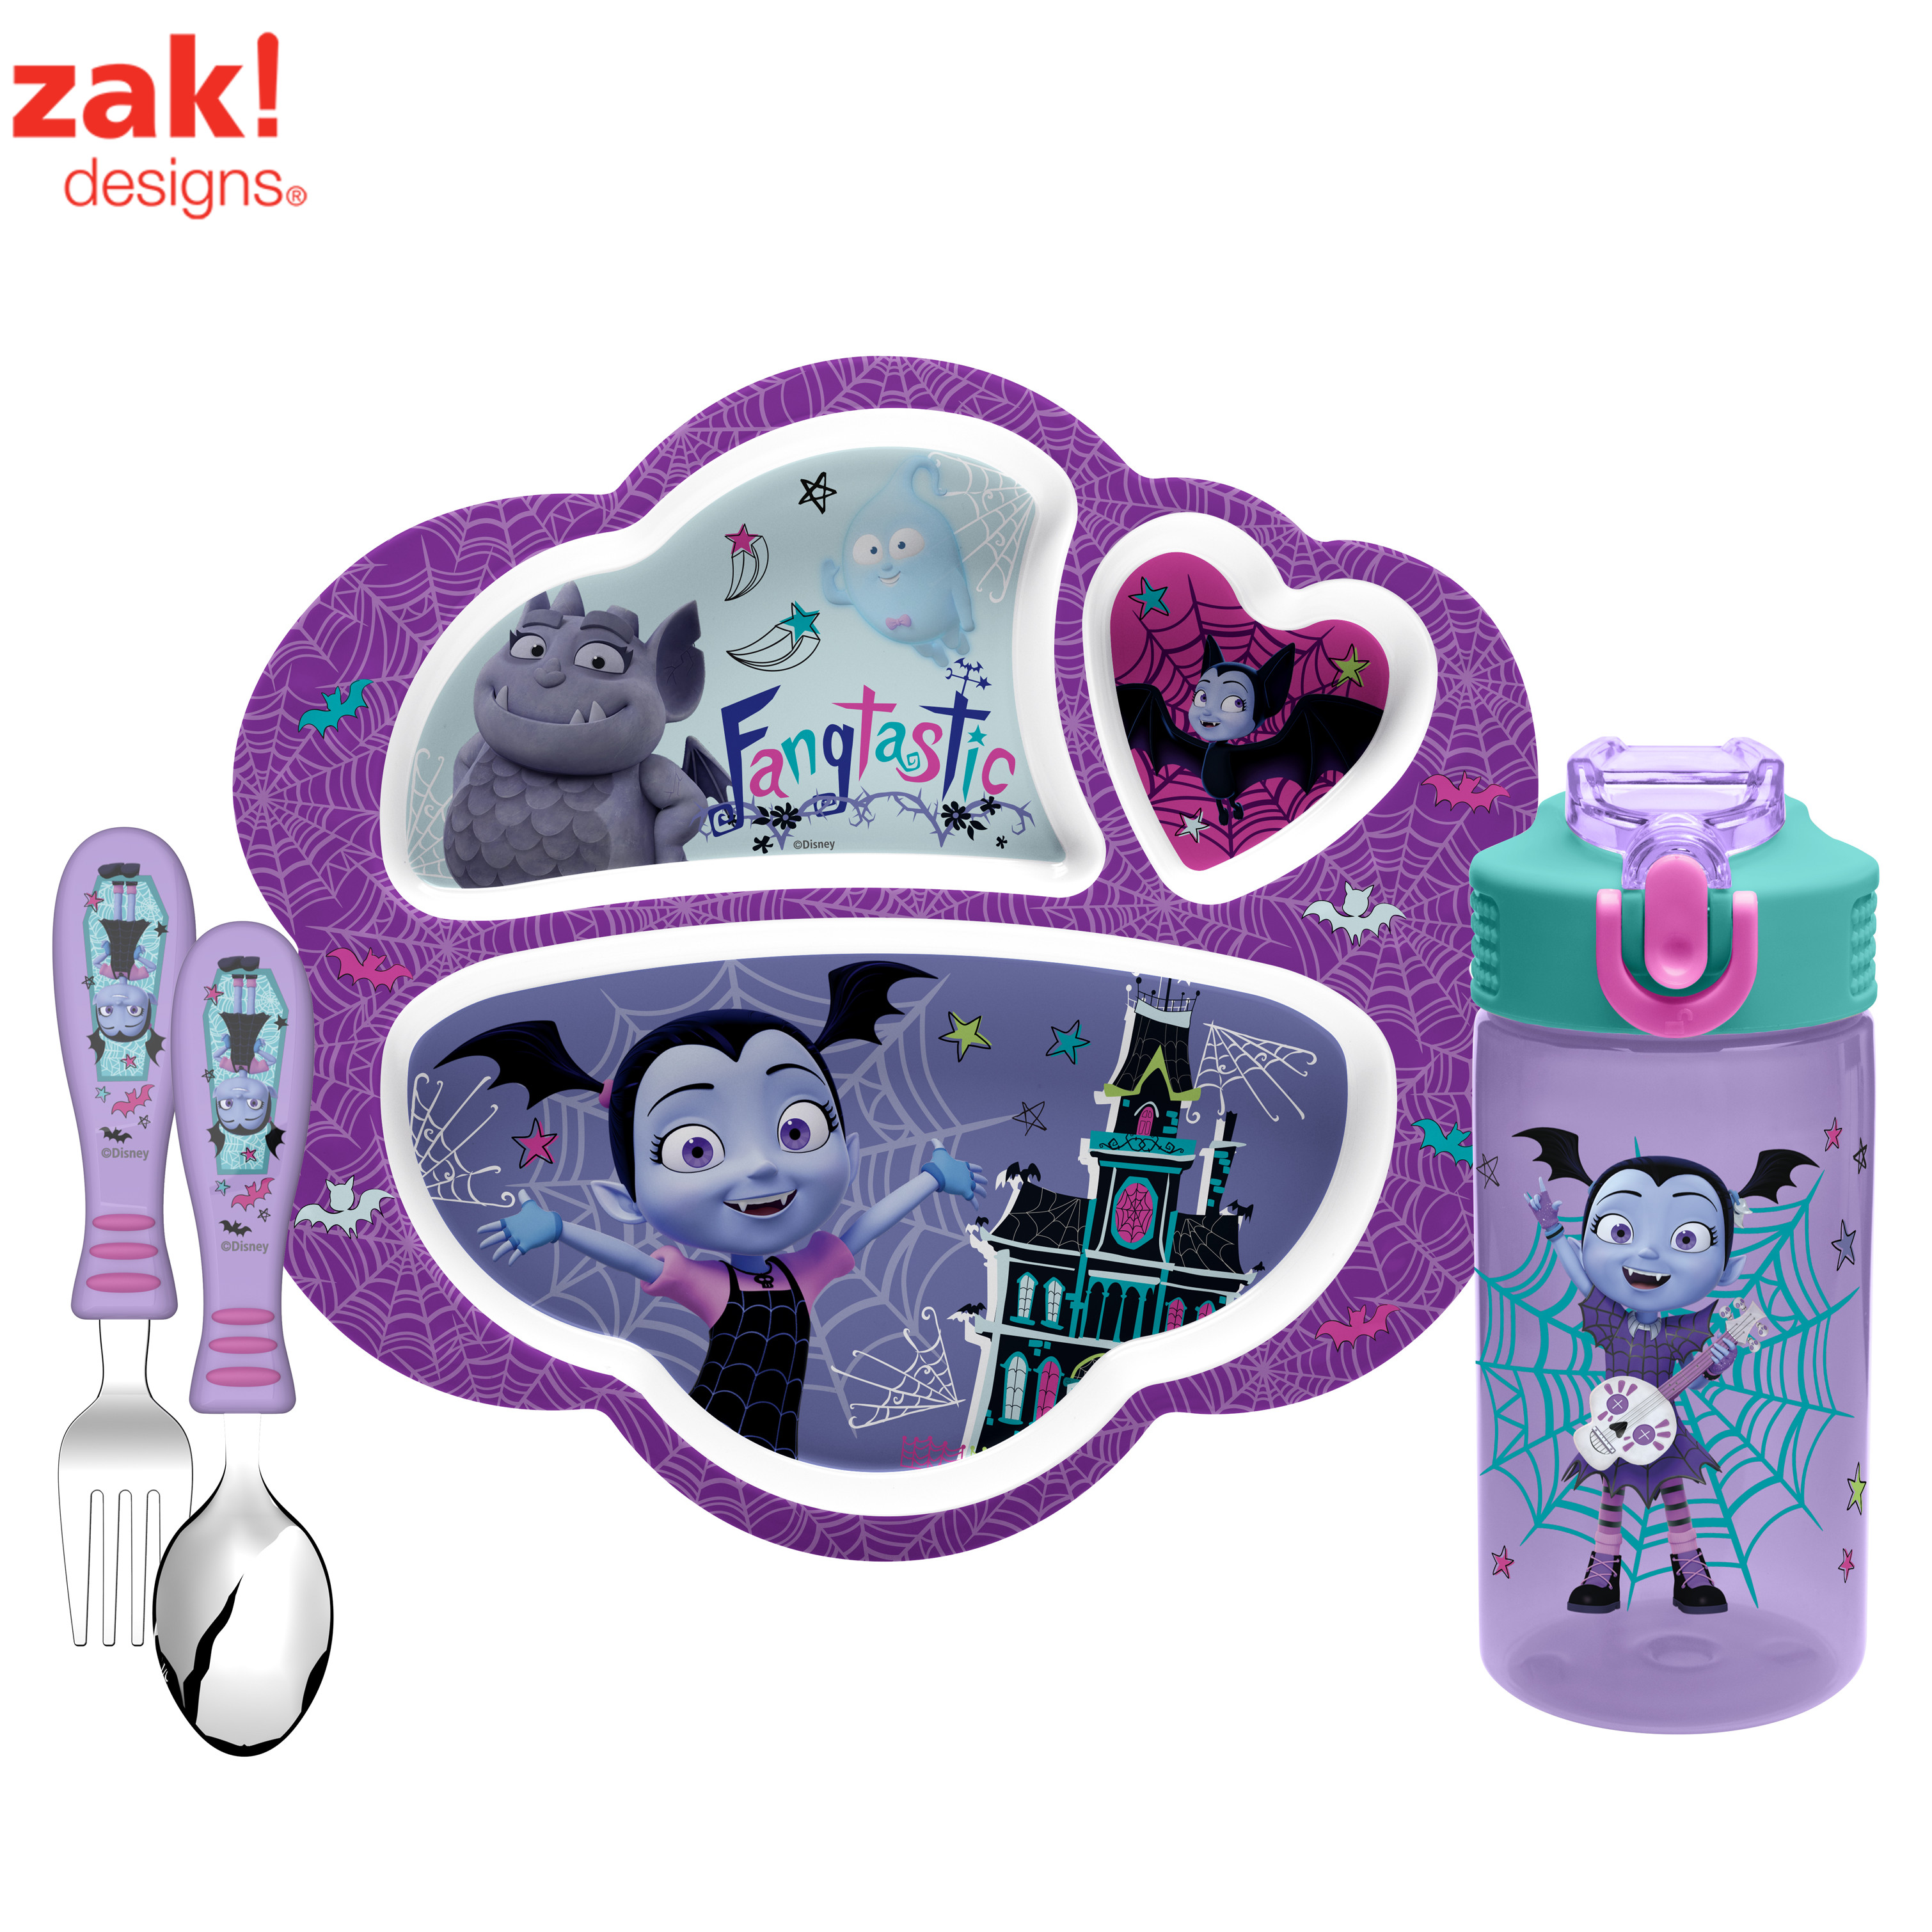 Nick Jr. Vampirina Plate, Tumbler & Flatware , 3-piece set